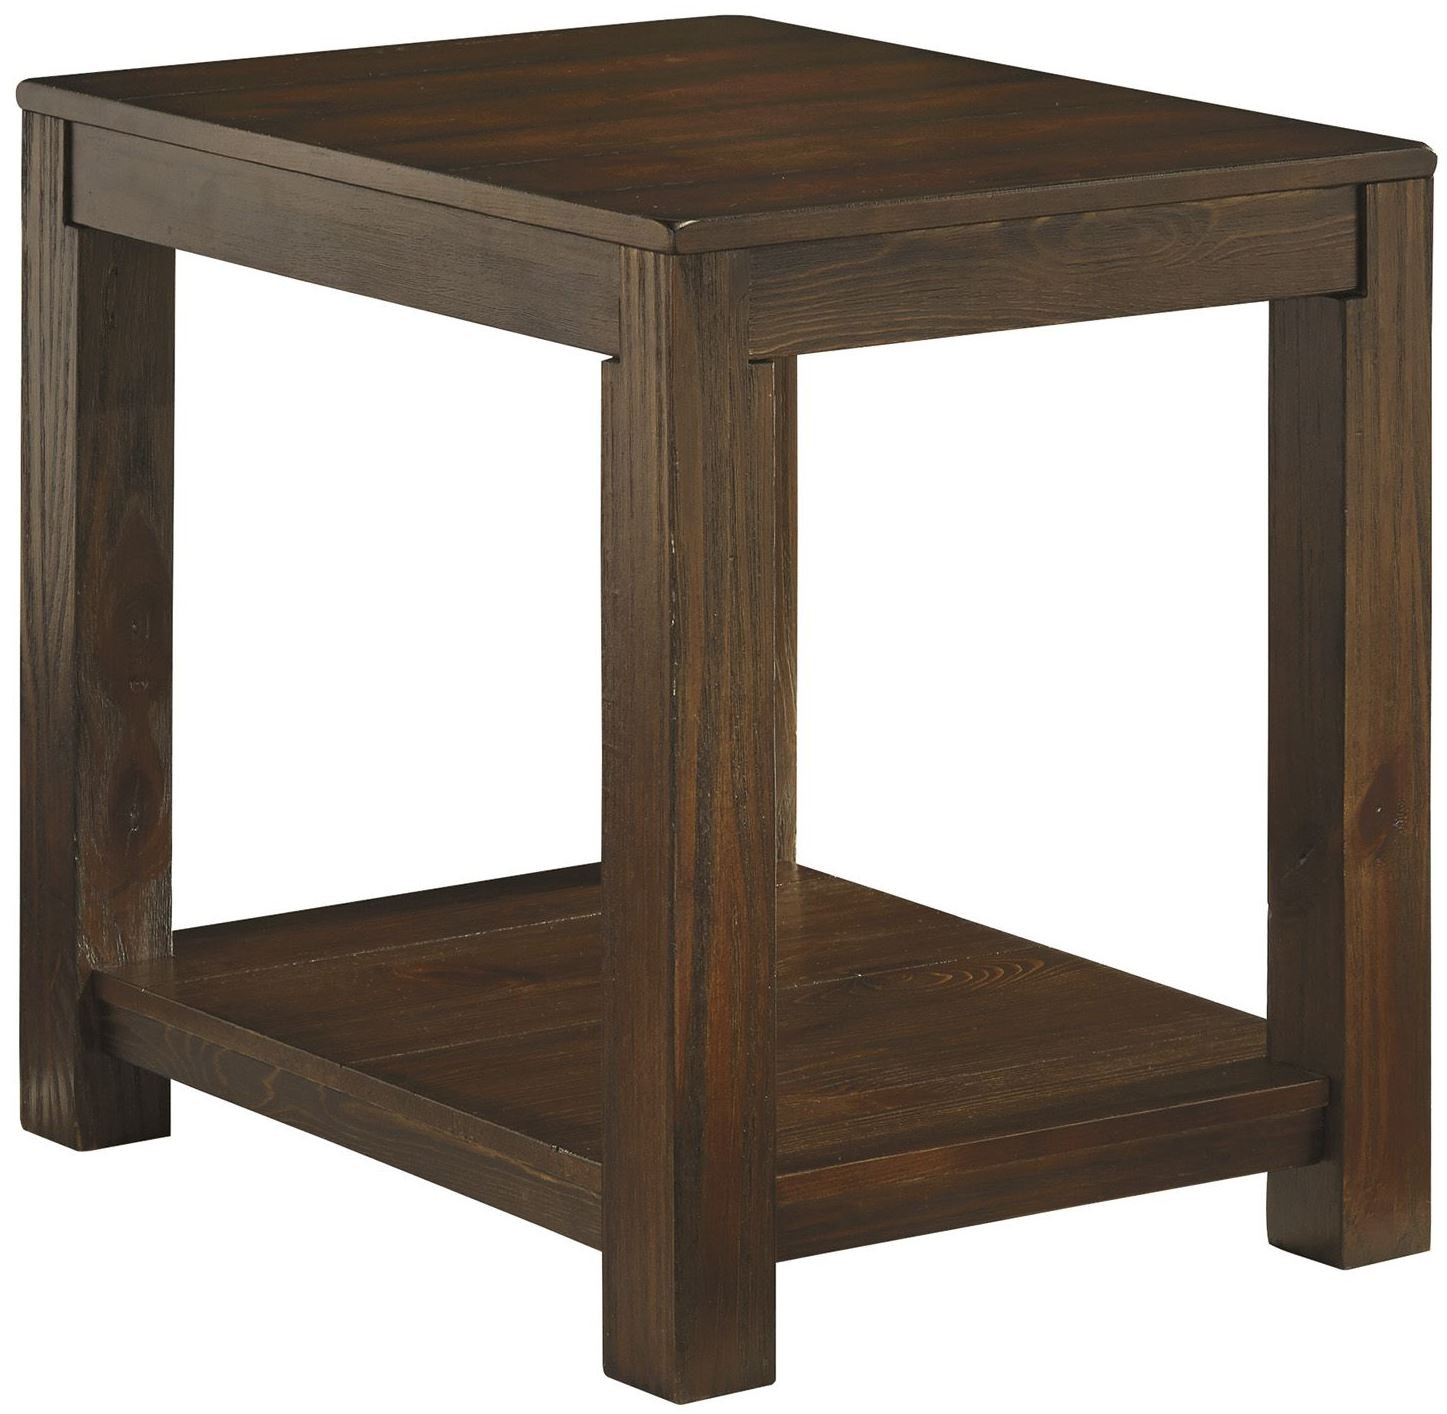 Grinlyn Rectangular End Table From Ashley T660 3